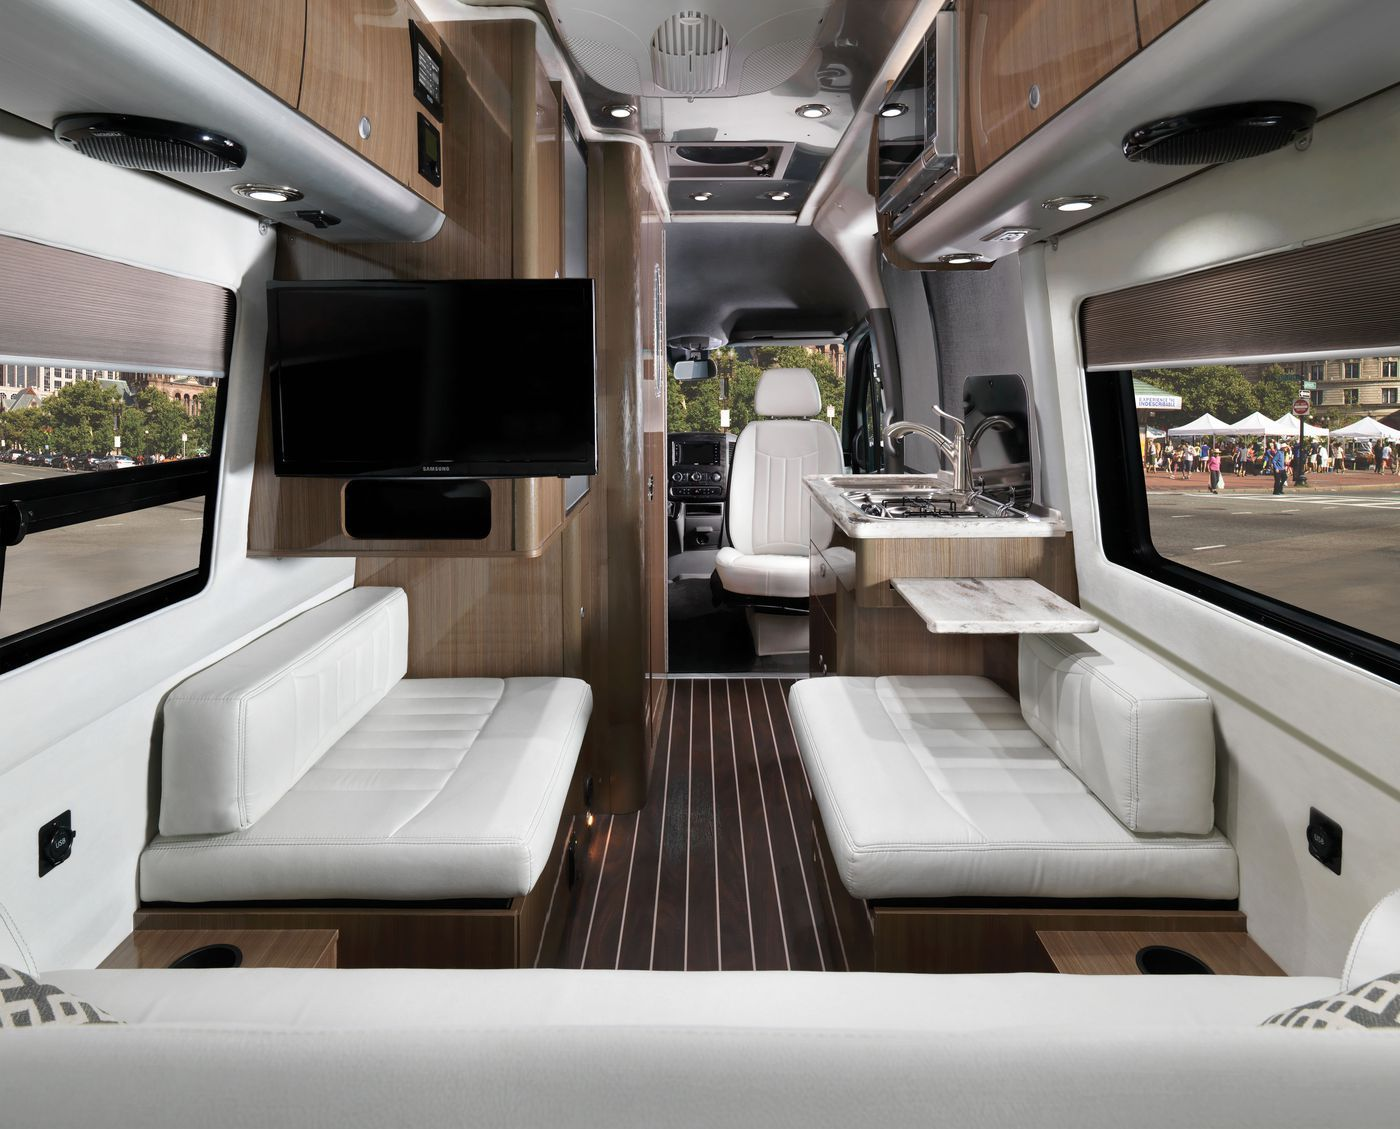 Airstream debuts new compact luxury camper van Rv